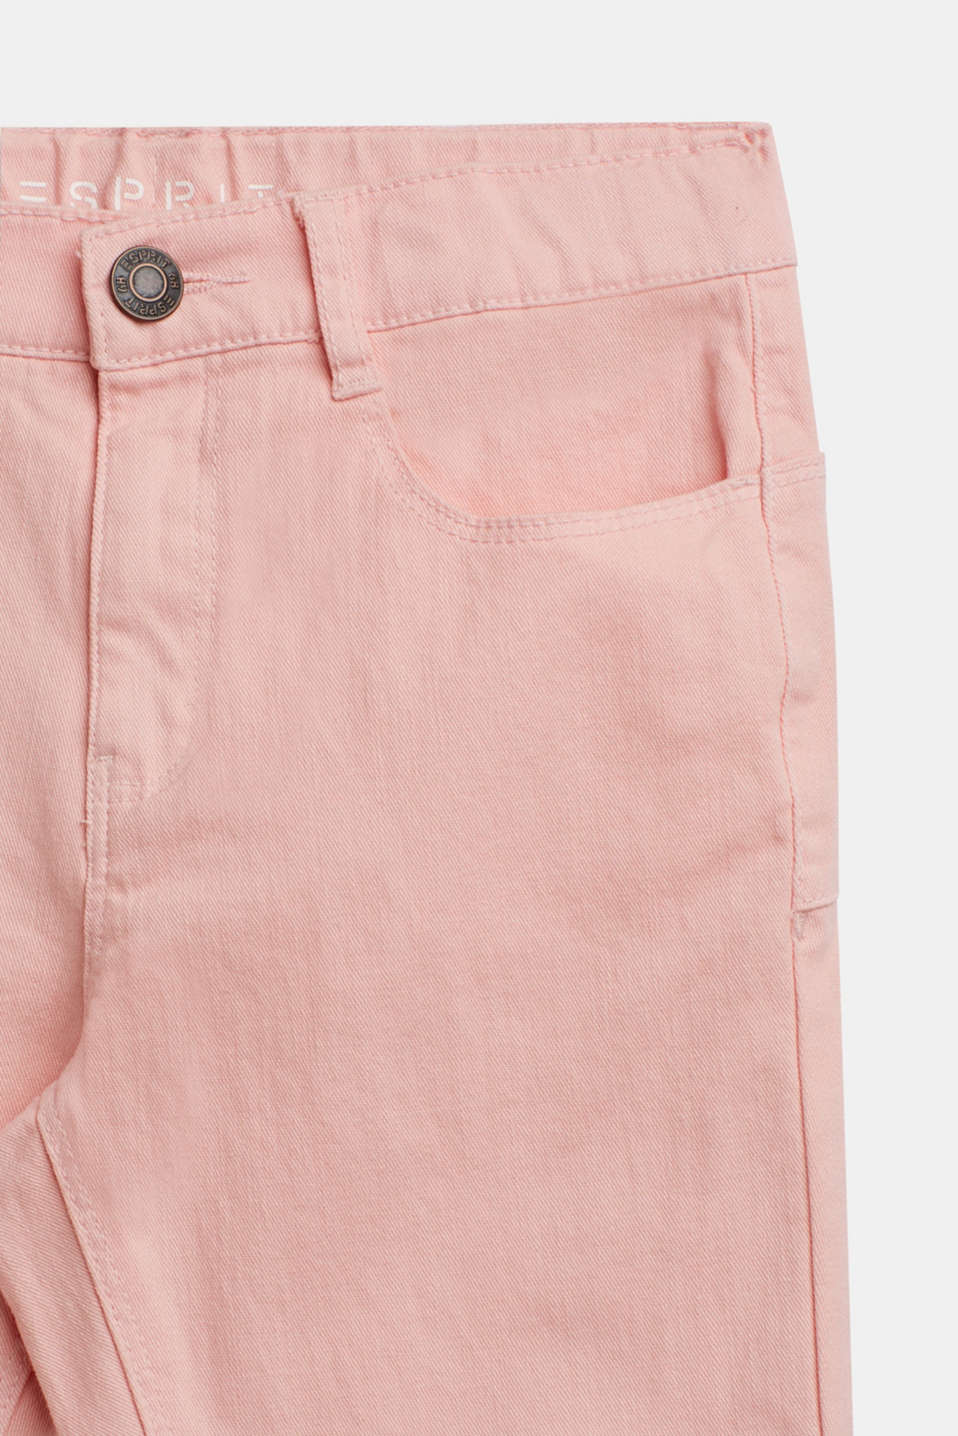 Coloured stretch jeans, LCTINTED ROSE, detail image number 2